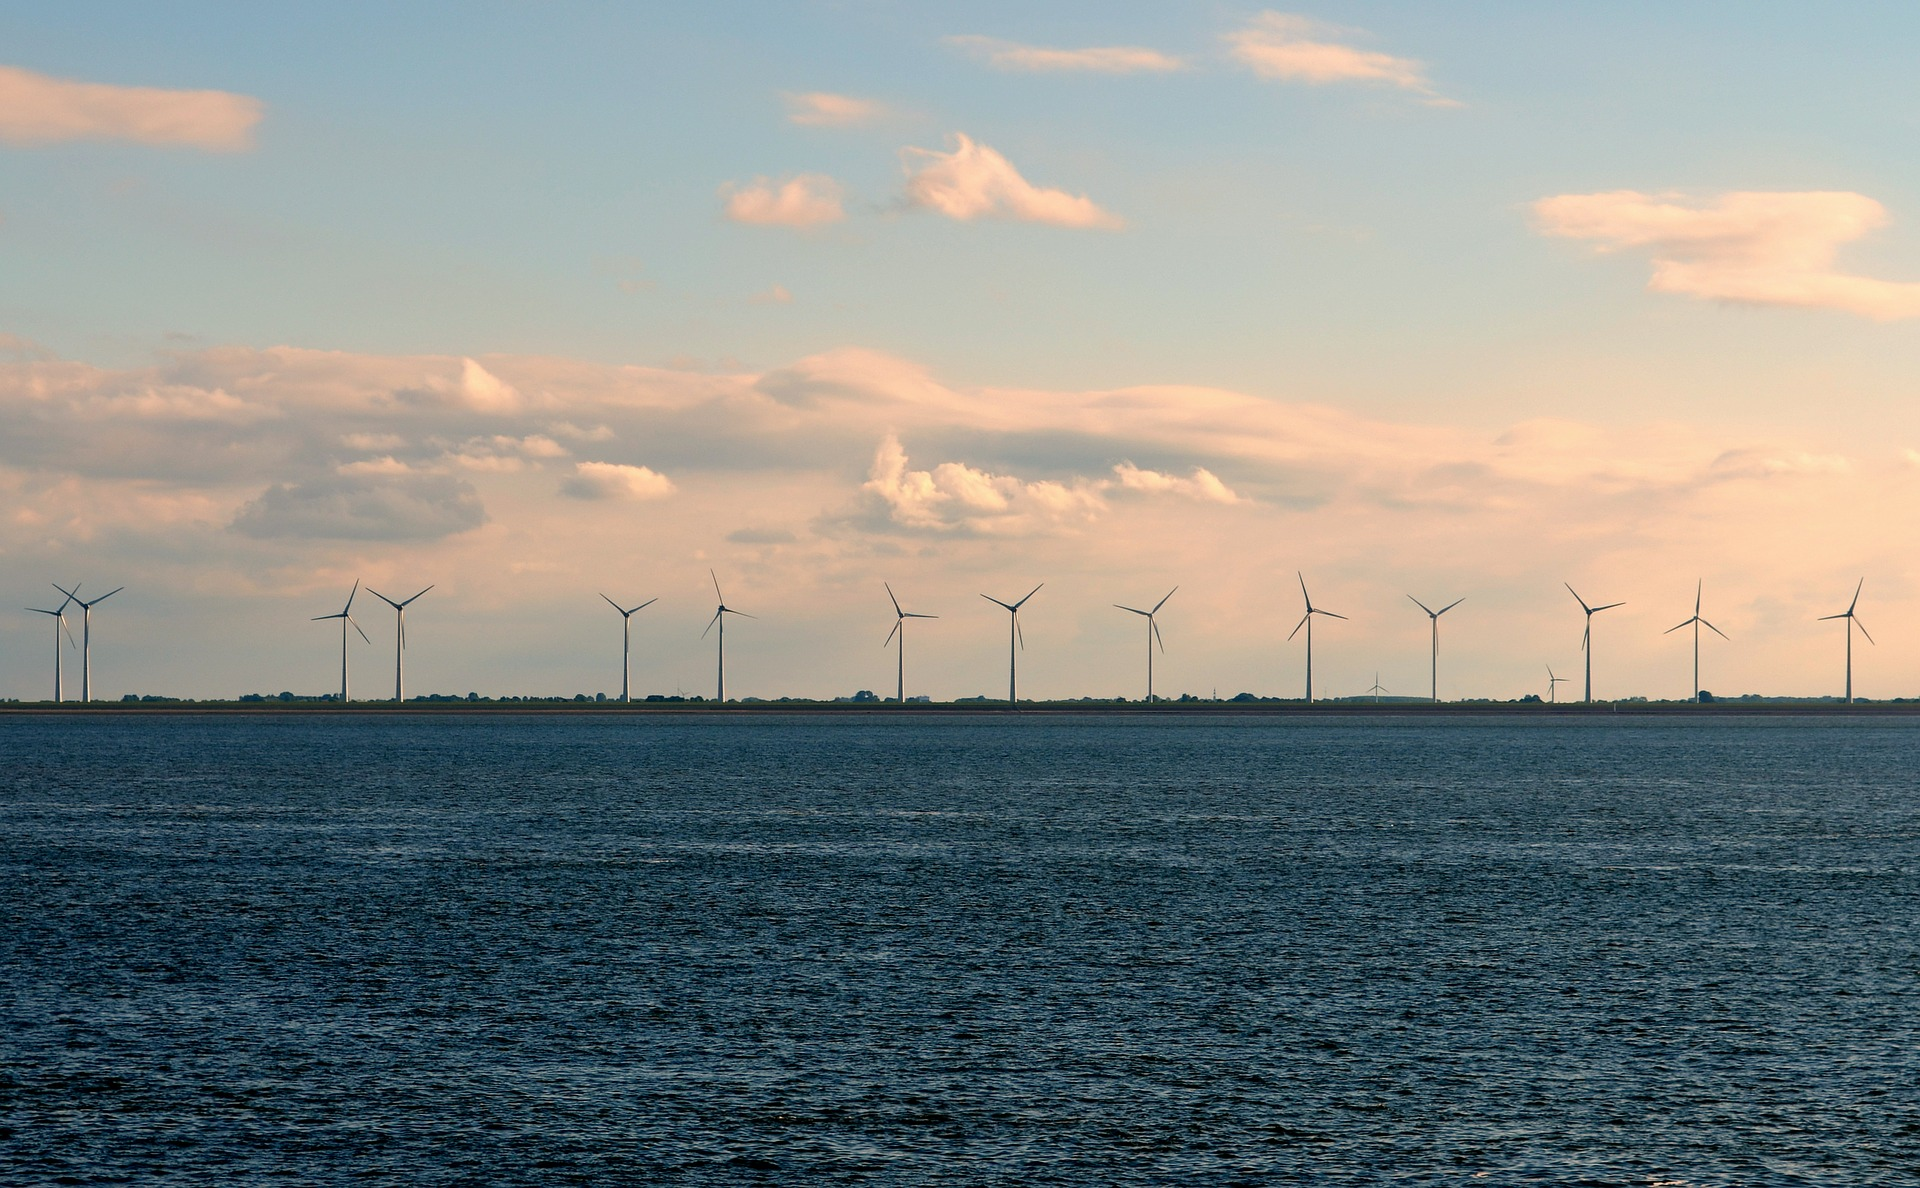 windrader-1678204_1920 Towards condition-based maintenance for the offshore wind energy assets